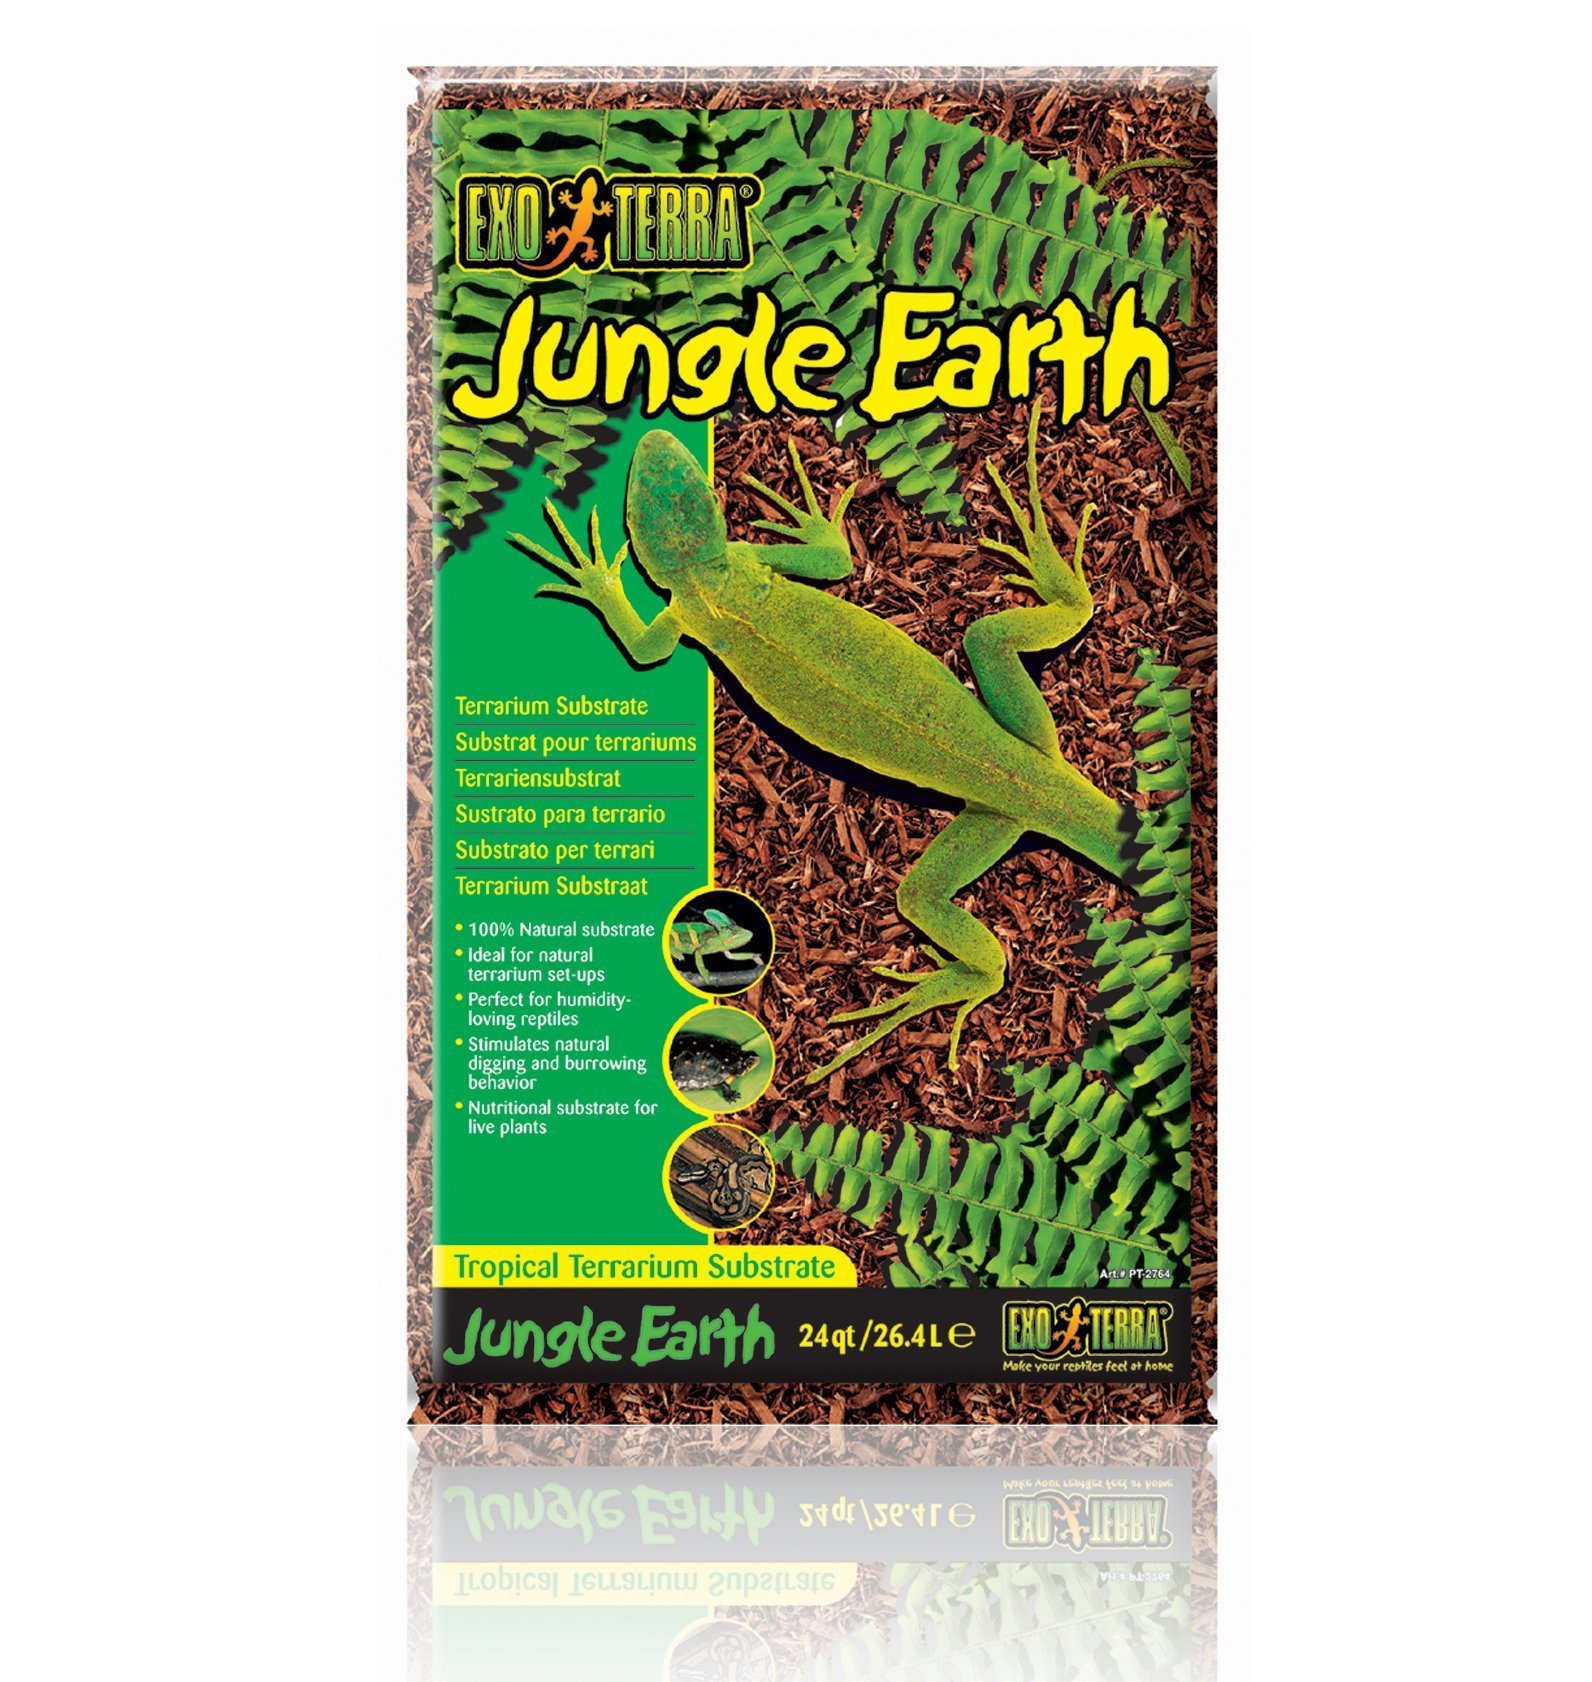 Exo Terra Exo Terra Jungle Earth Terrarium Substrate, 26.4 L (24 Qt) by Exo Terra